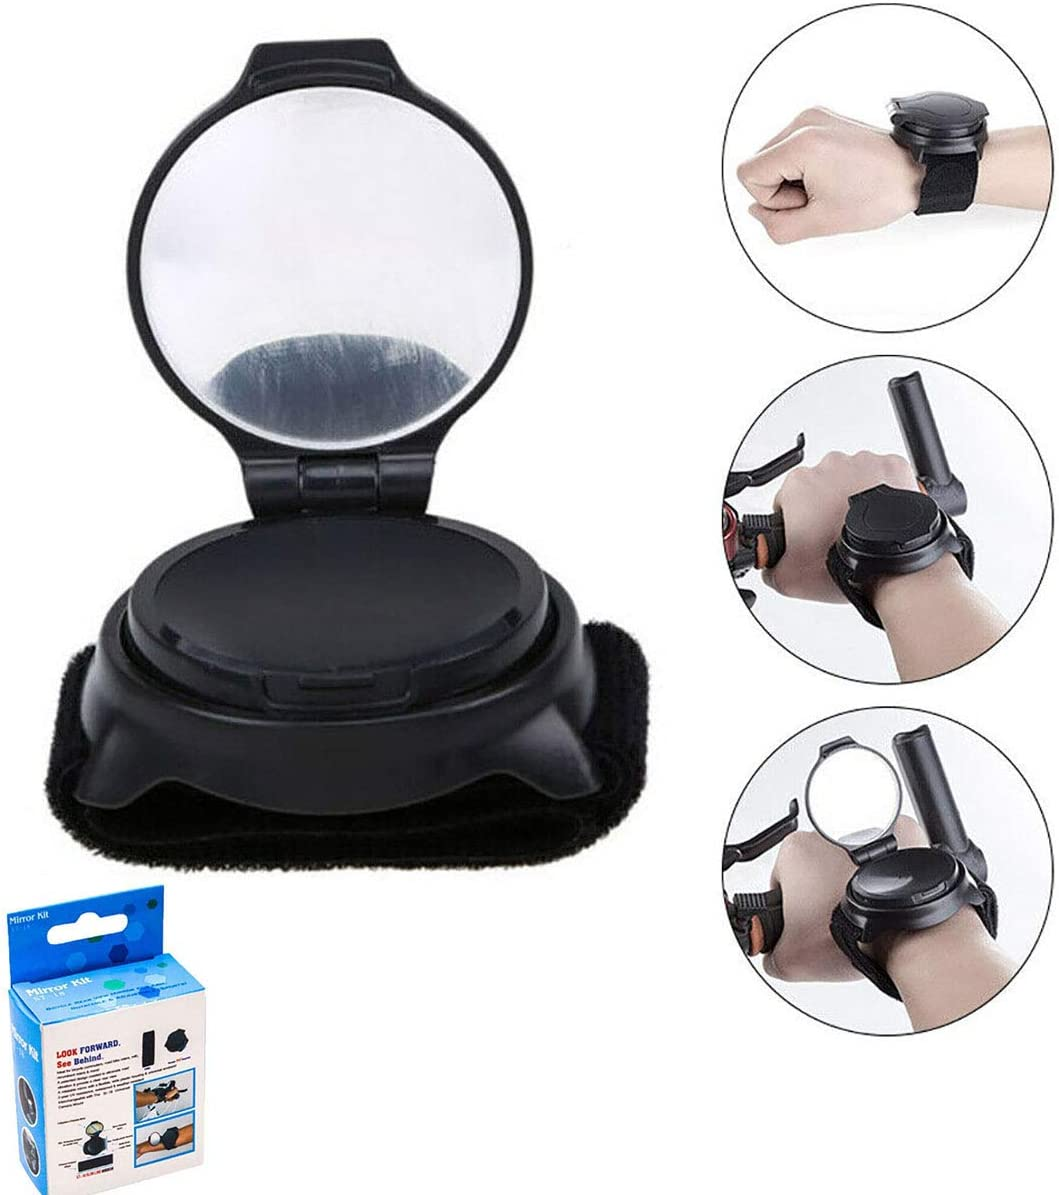 BICYCLE REAR VIEW MIRROR WEARABLE ARM WRIST BAND ADJUSTABLE 360° ROTATE FUNNY